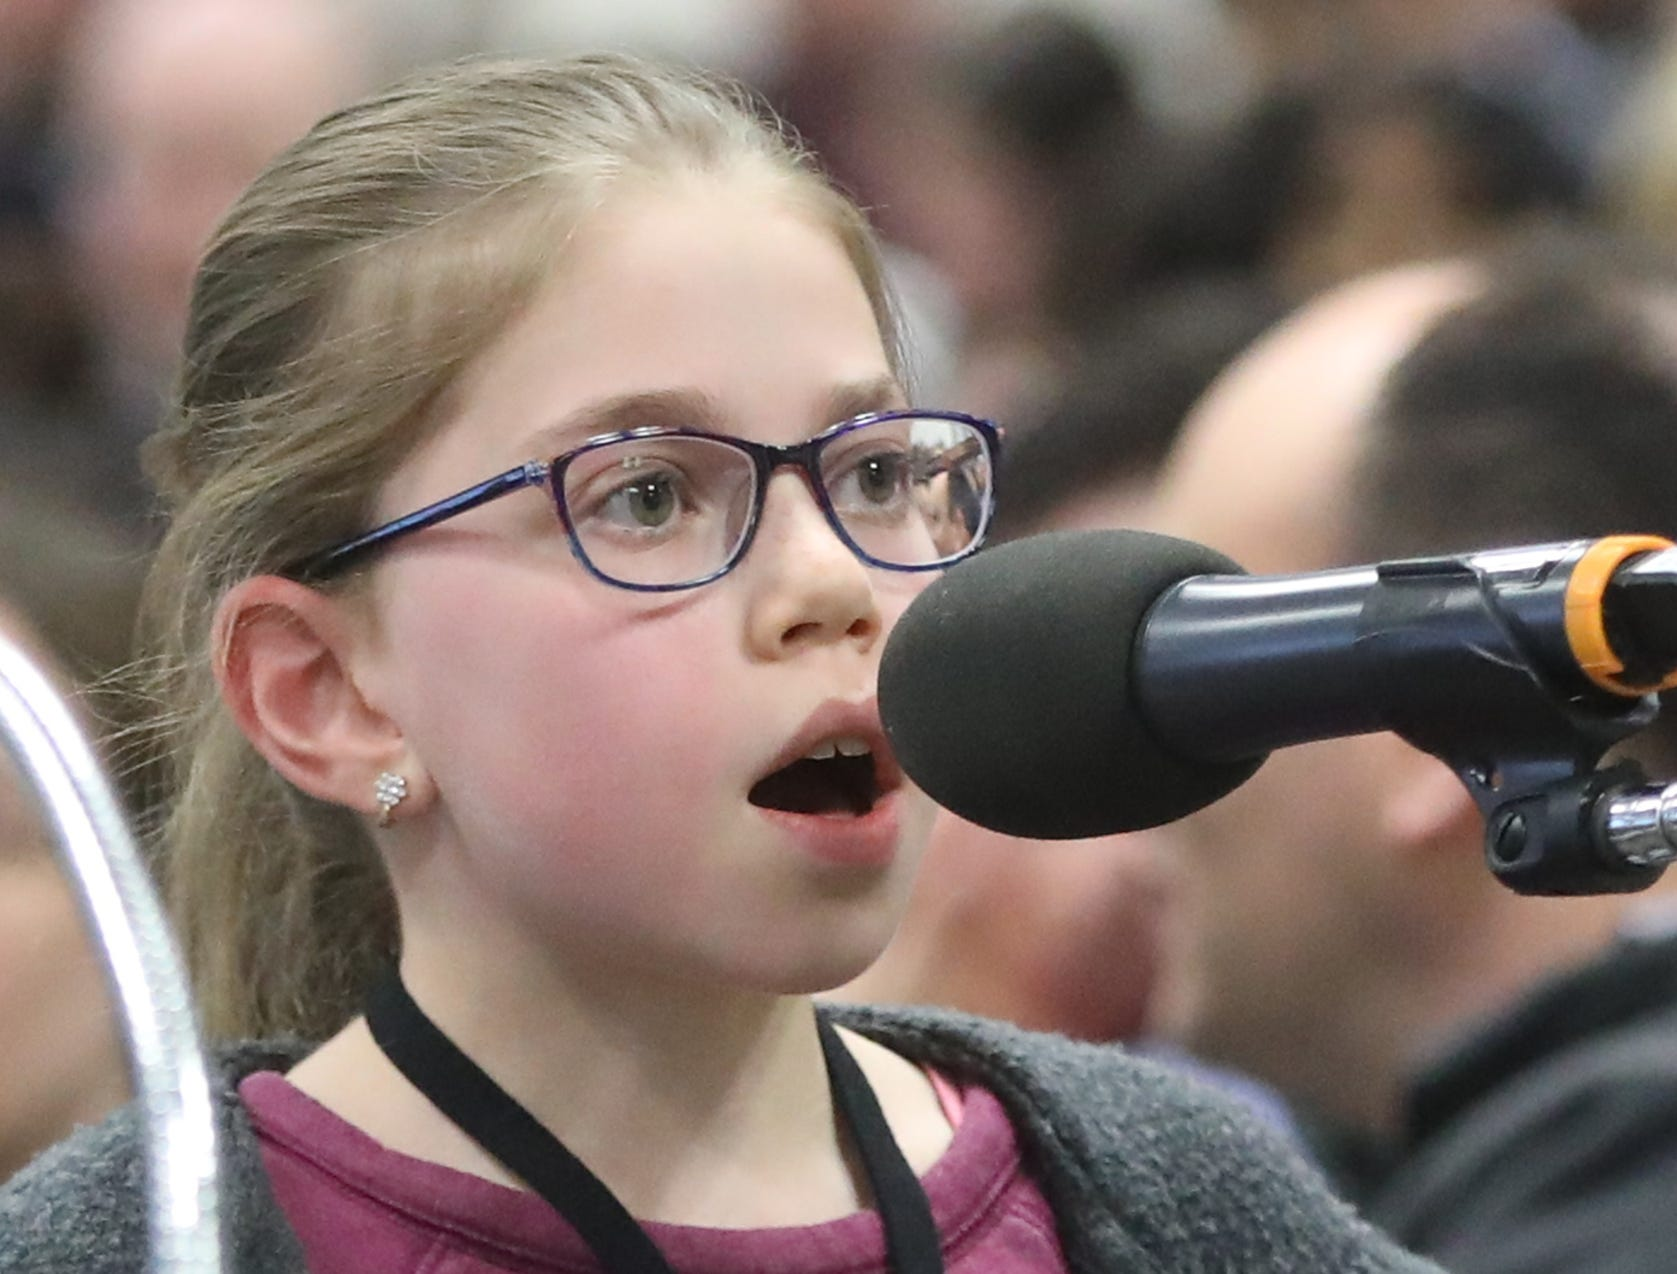 Anna Bergelson, of Cliffside Park, competes in the first round of the 2019 North Jersey Spelling Bee, in Paramus. Thursday, March 14, 2019